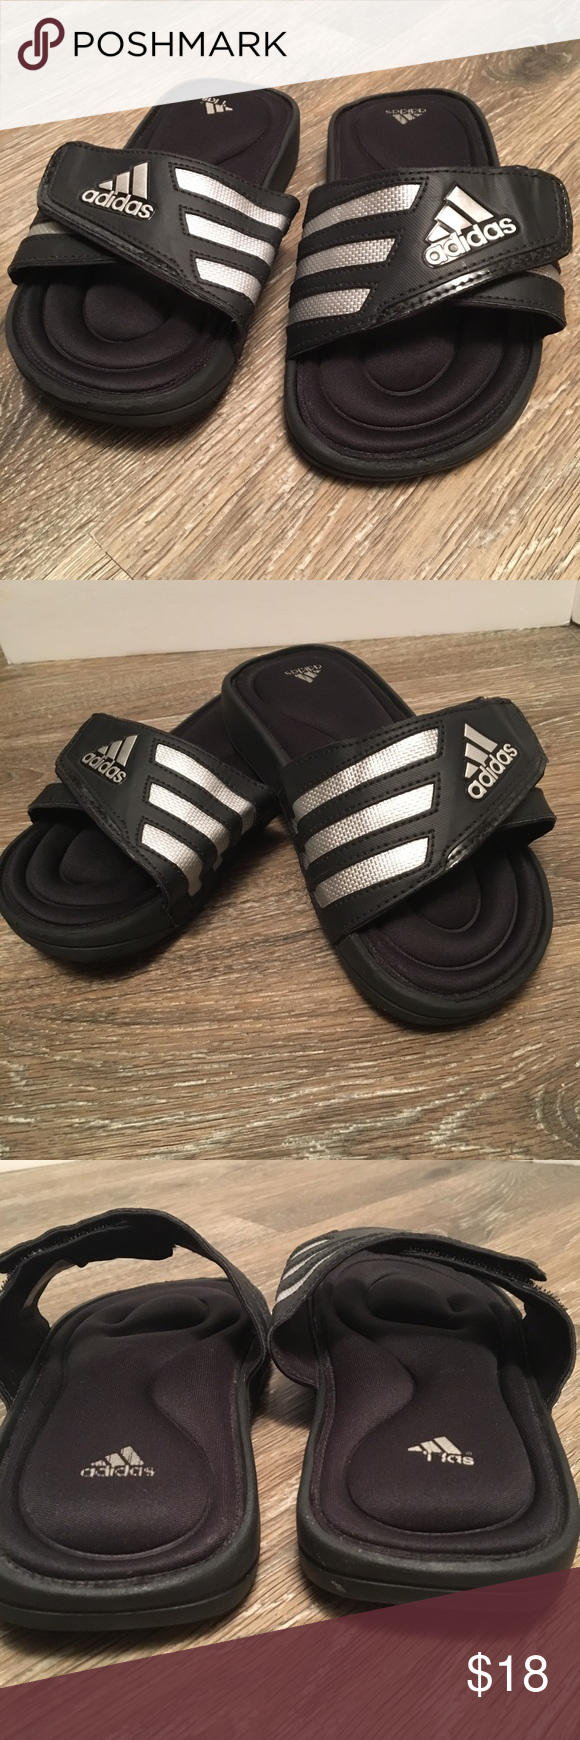 e9a5990b0f783d Kids Adidas sandal - size 13 Adidas sandal with foam soles for maximum  comfort for little feet! Velcro cross strap. Excellent condition adidas  Shoes Sandals ...